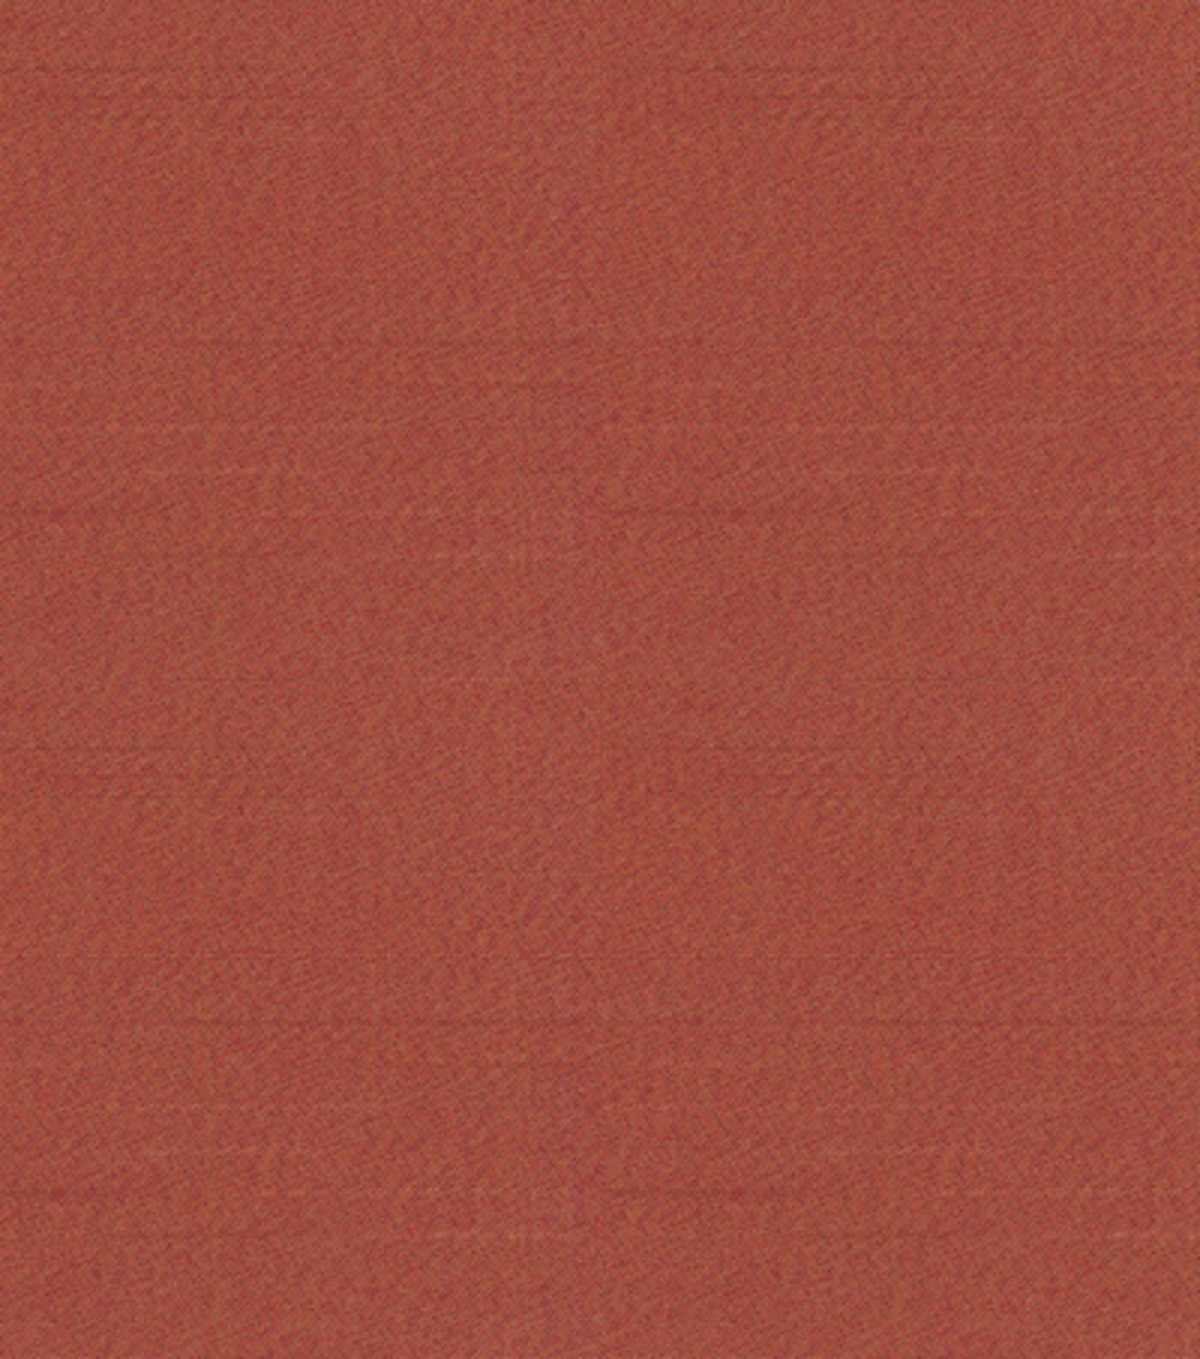 "Home Decor 8""x8"" Fabric Swatch-HGTV HOME Polarized Garnet"